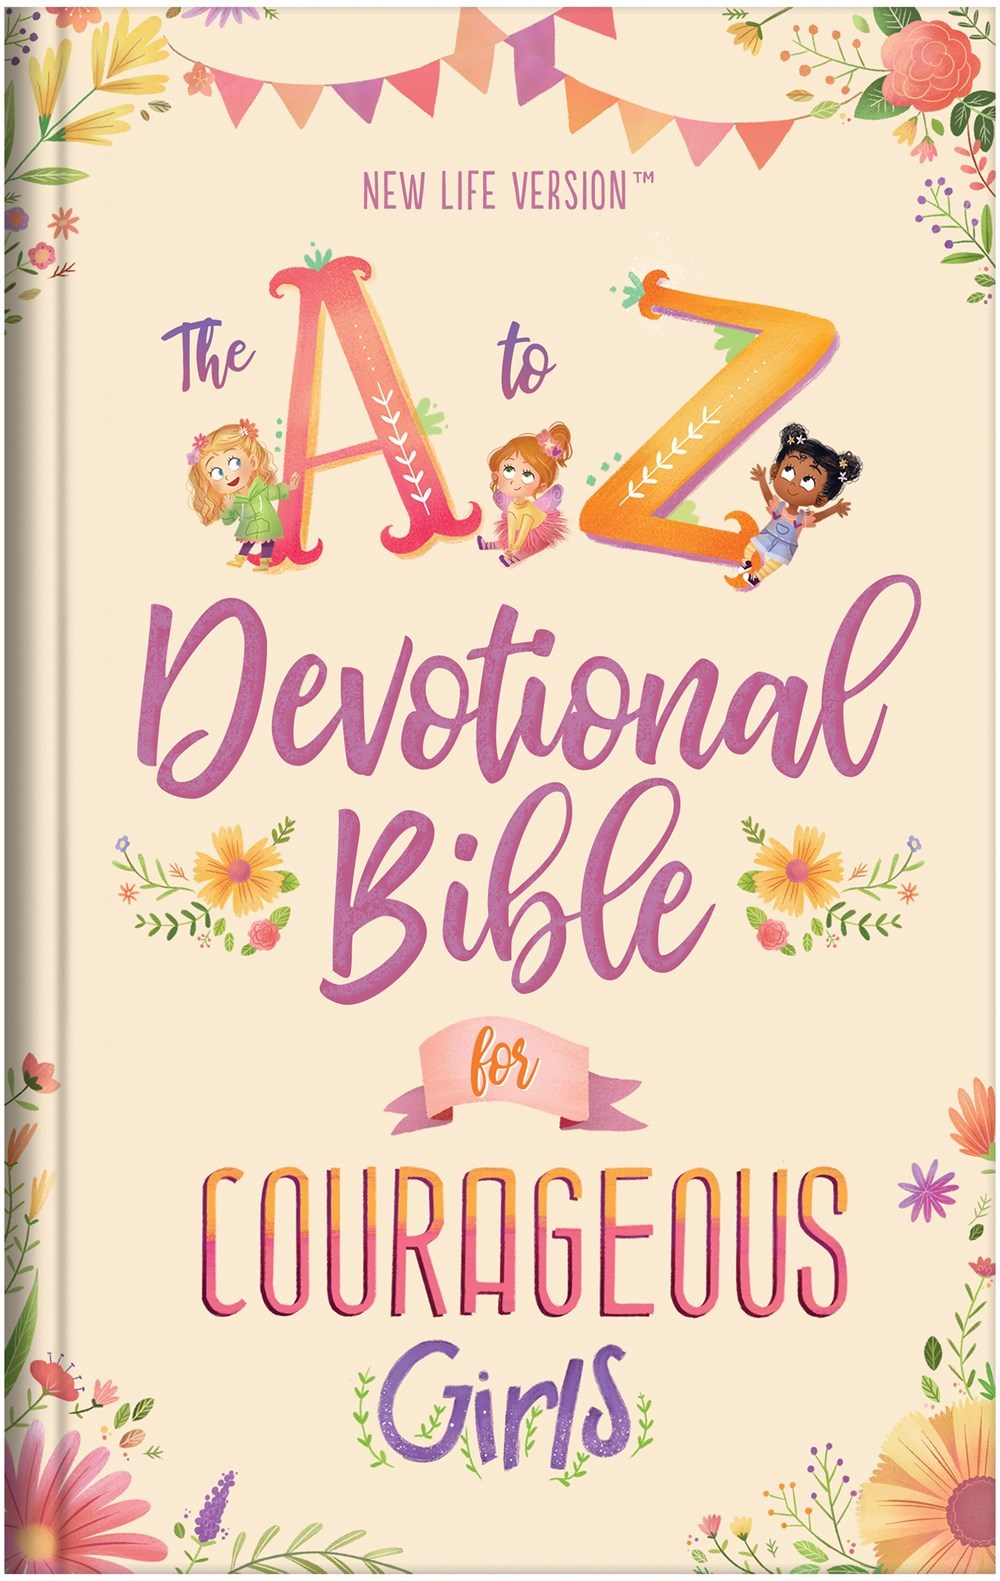 NLV The A To Z Devotional Bible For Courageous Girls-Hardcover